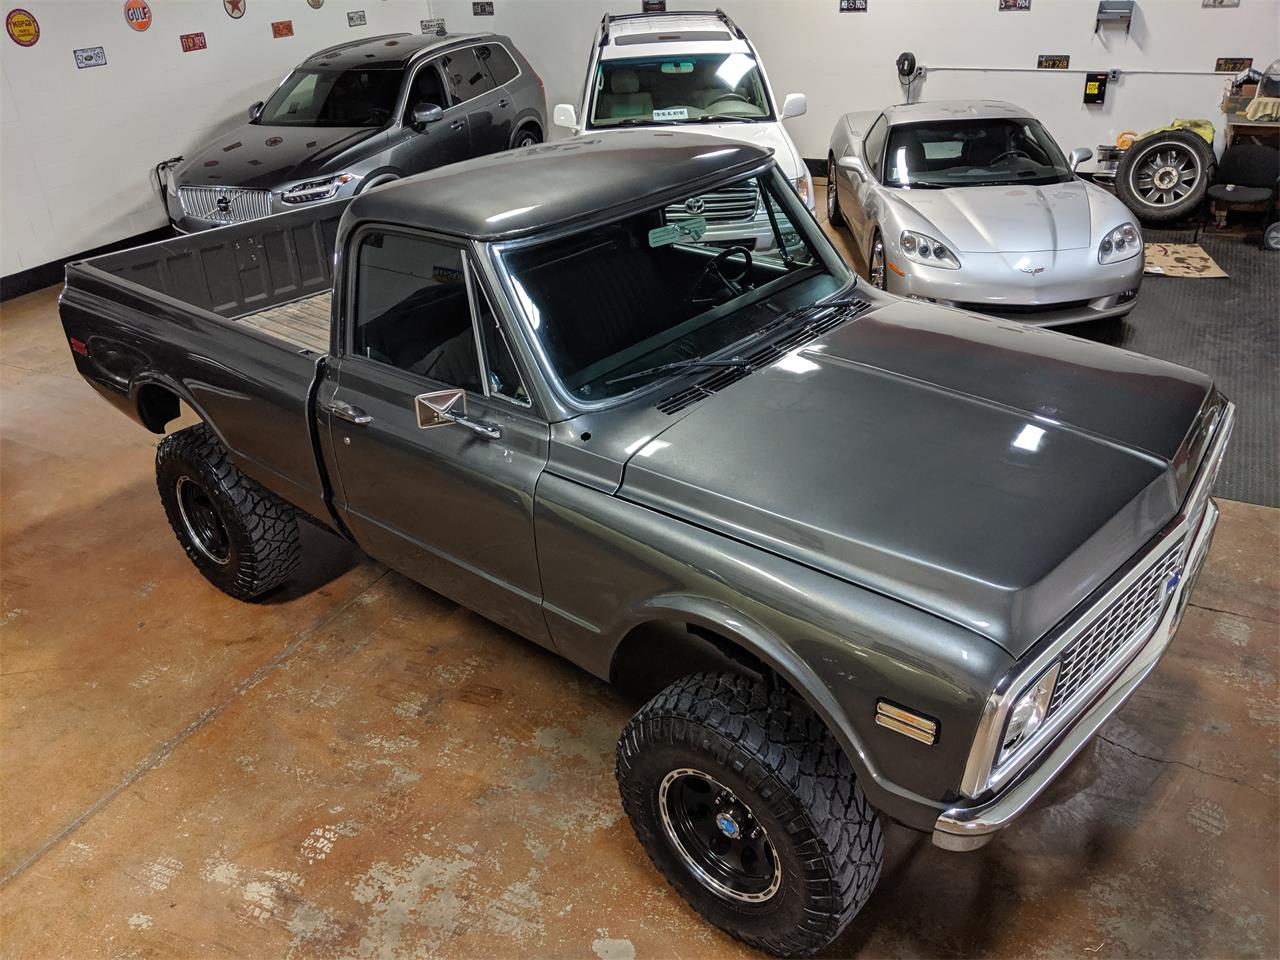 Large Picture of Classic '72 Chevrolet K-10 located in San Luis Obispo California - $34,500.00 - Q6TS